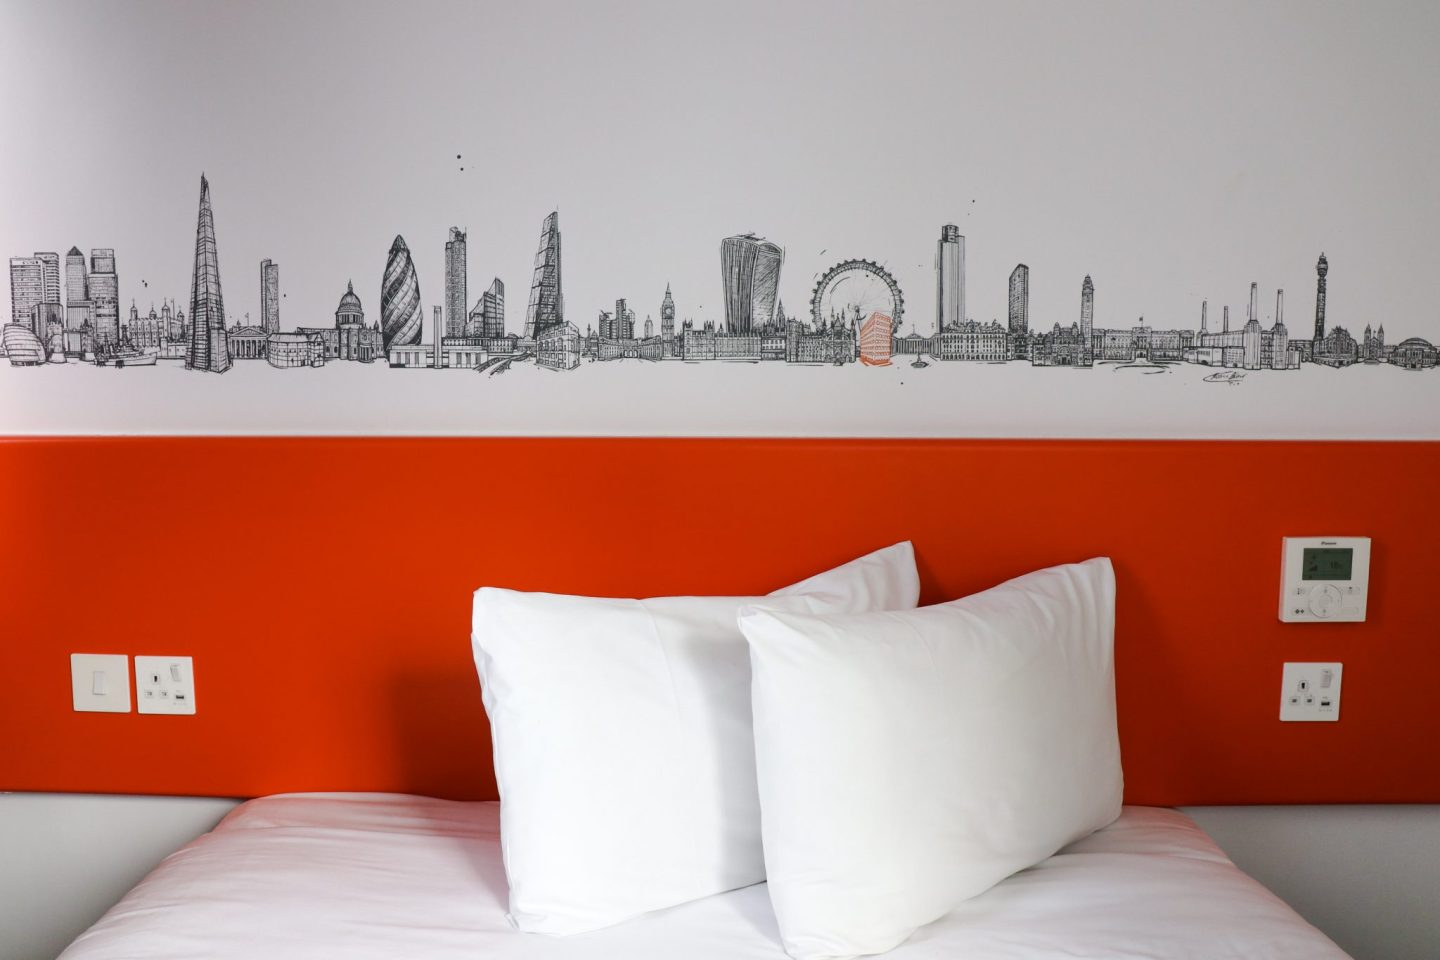 Budget Hotel Review: easyHotel Croydon